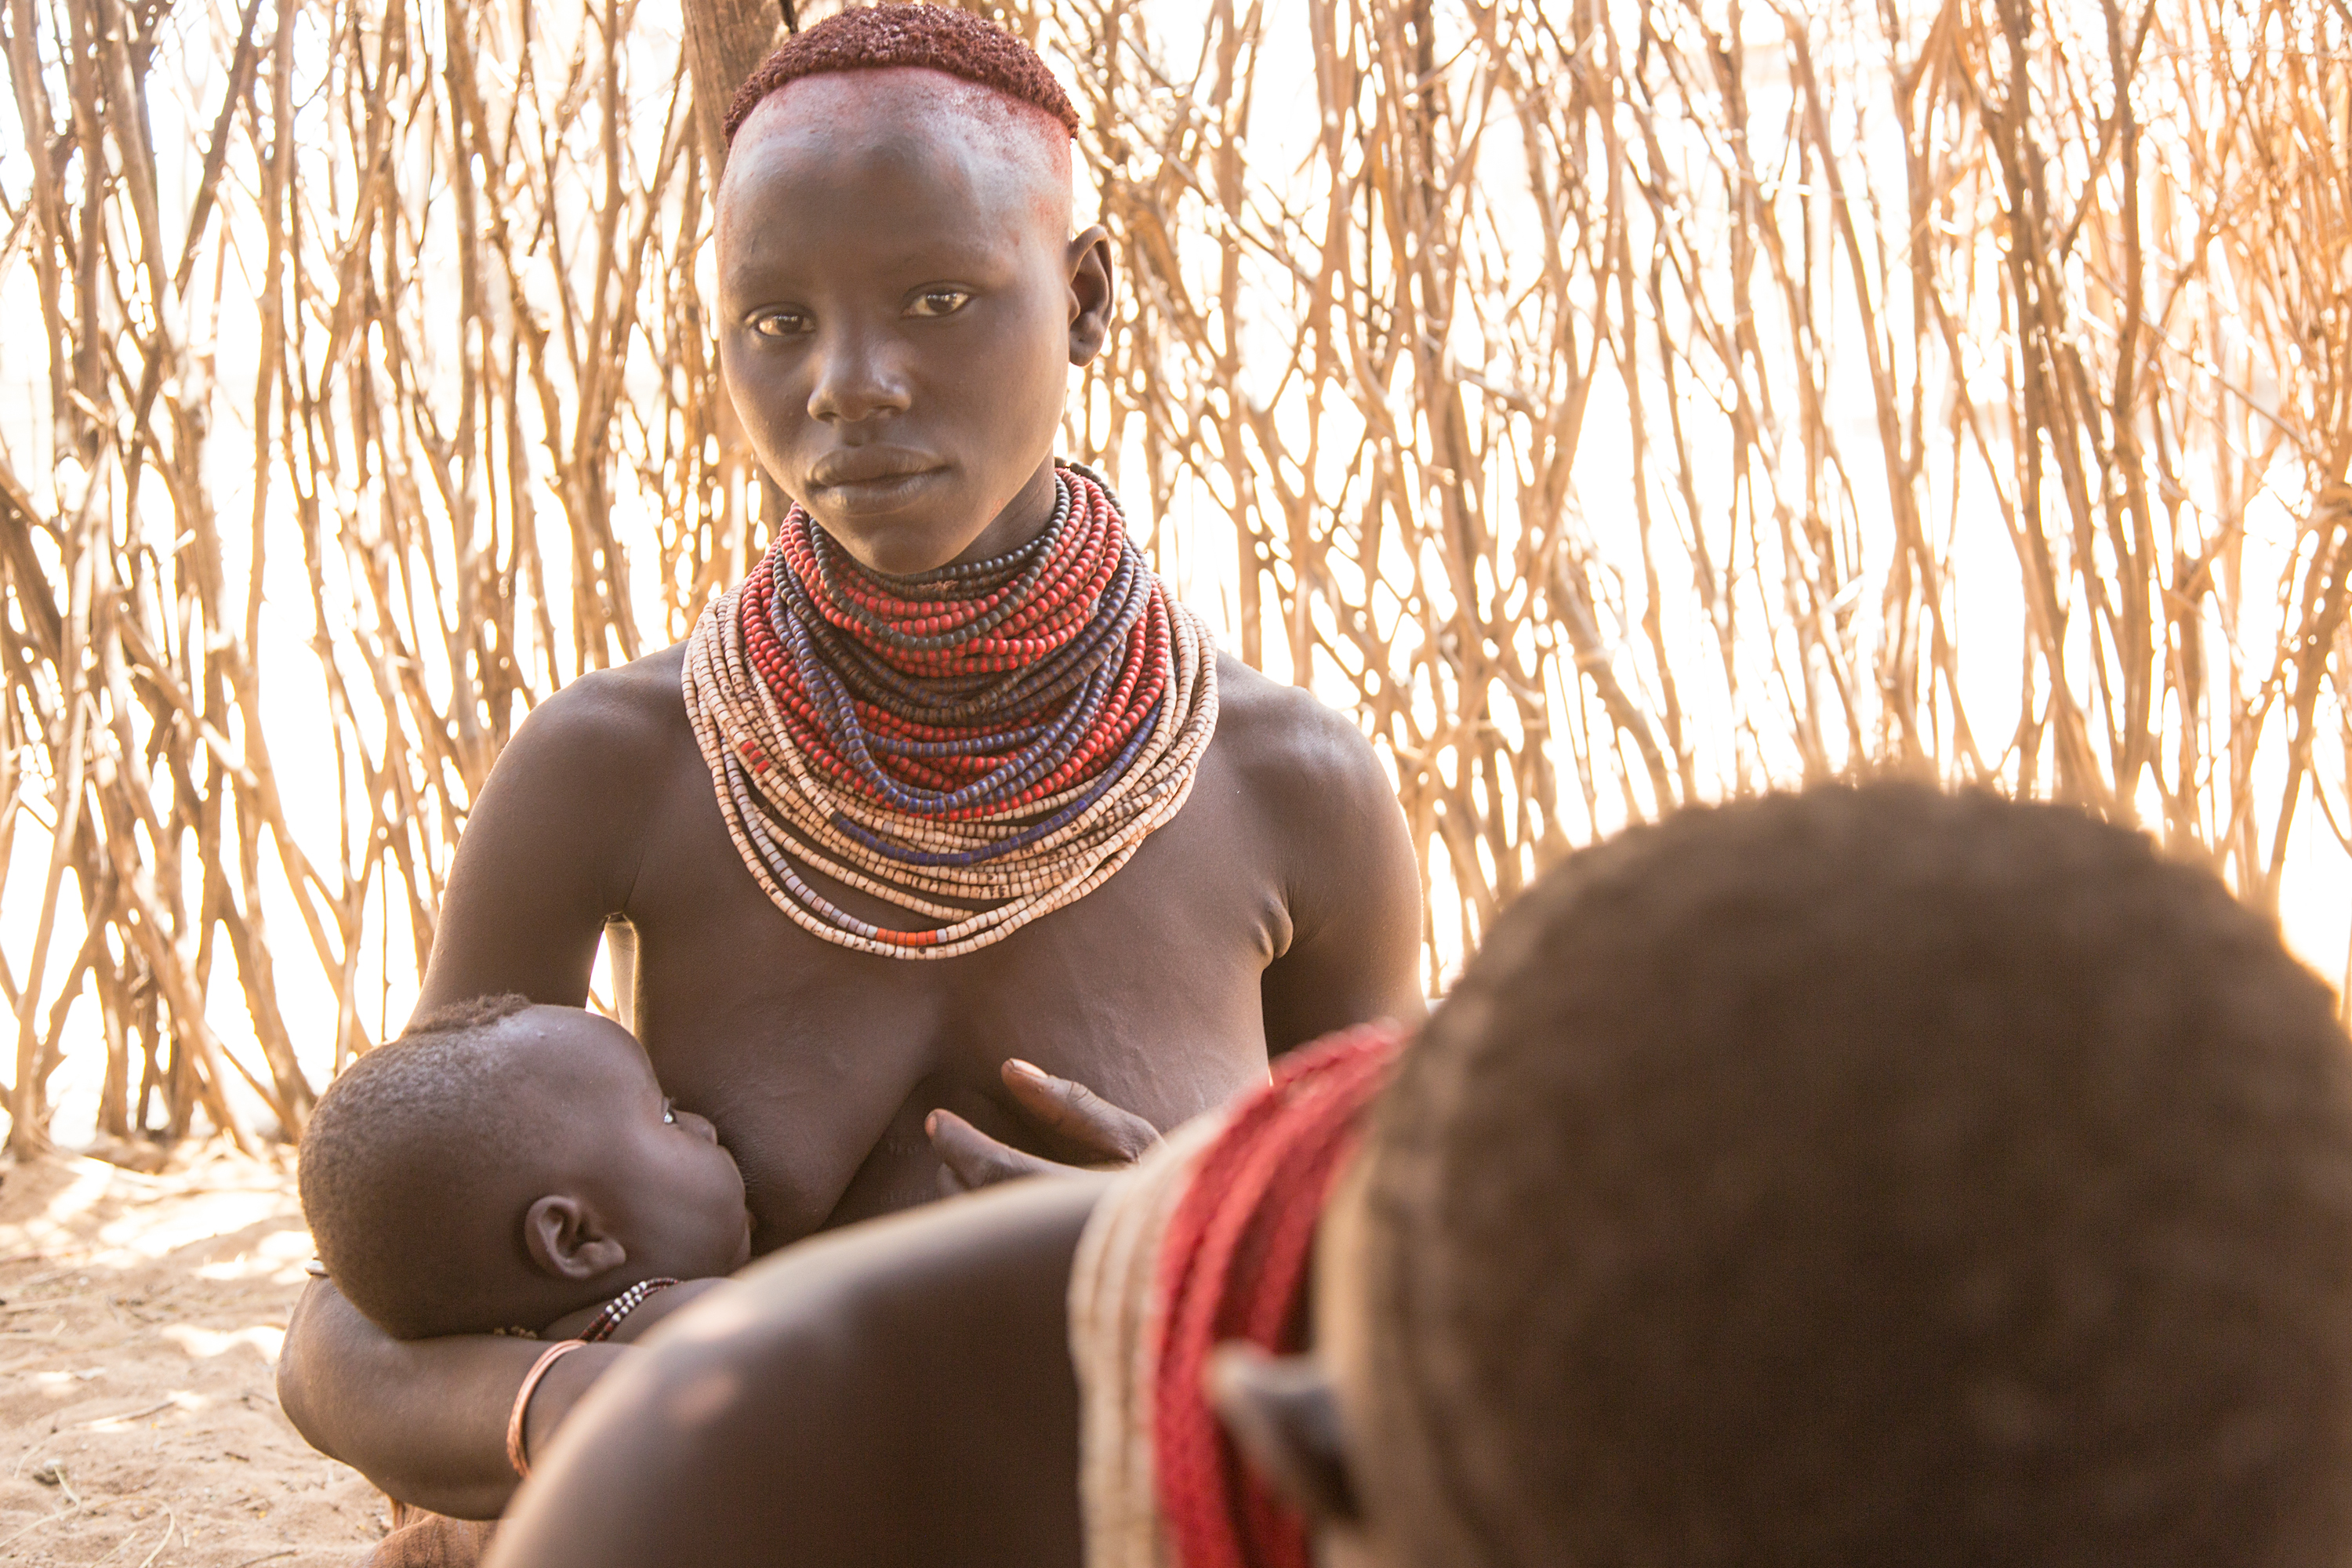 mingi child, ethiopia, omo valley, mingi curse, mingi children, photodavor rostuhar, afrika aktiva,